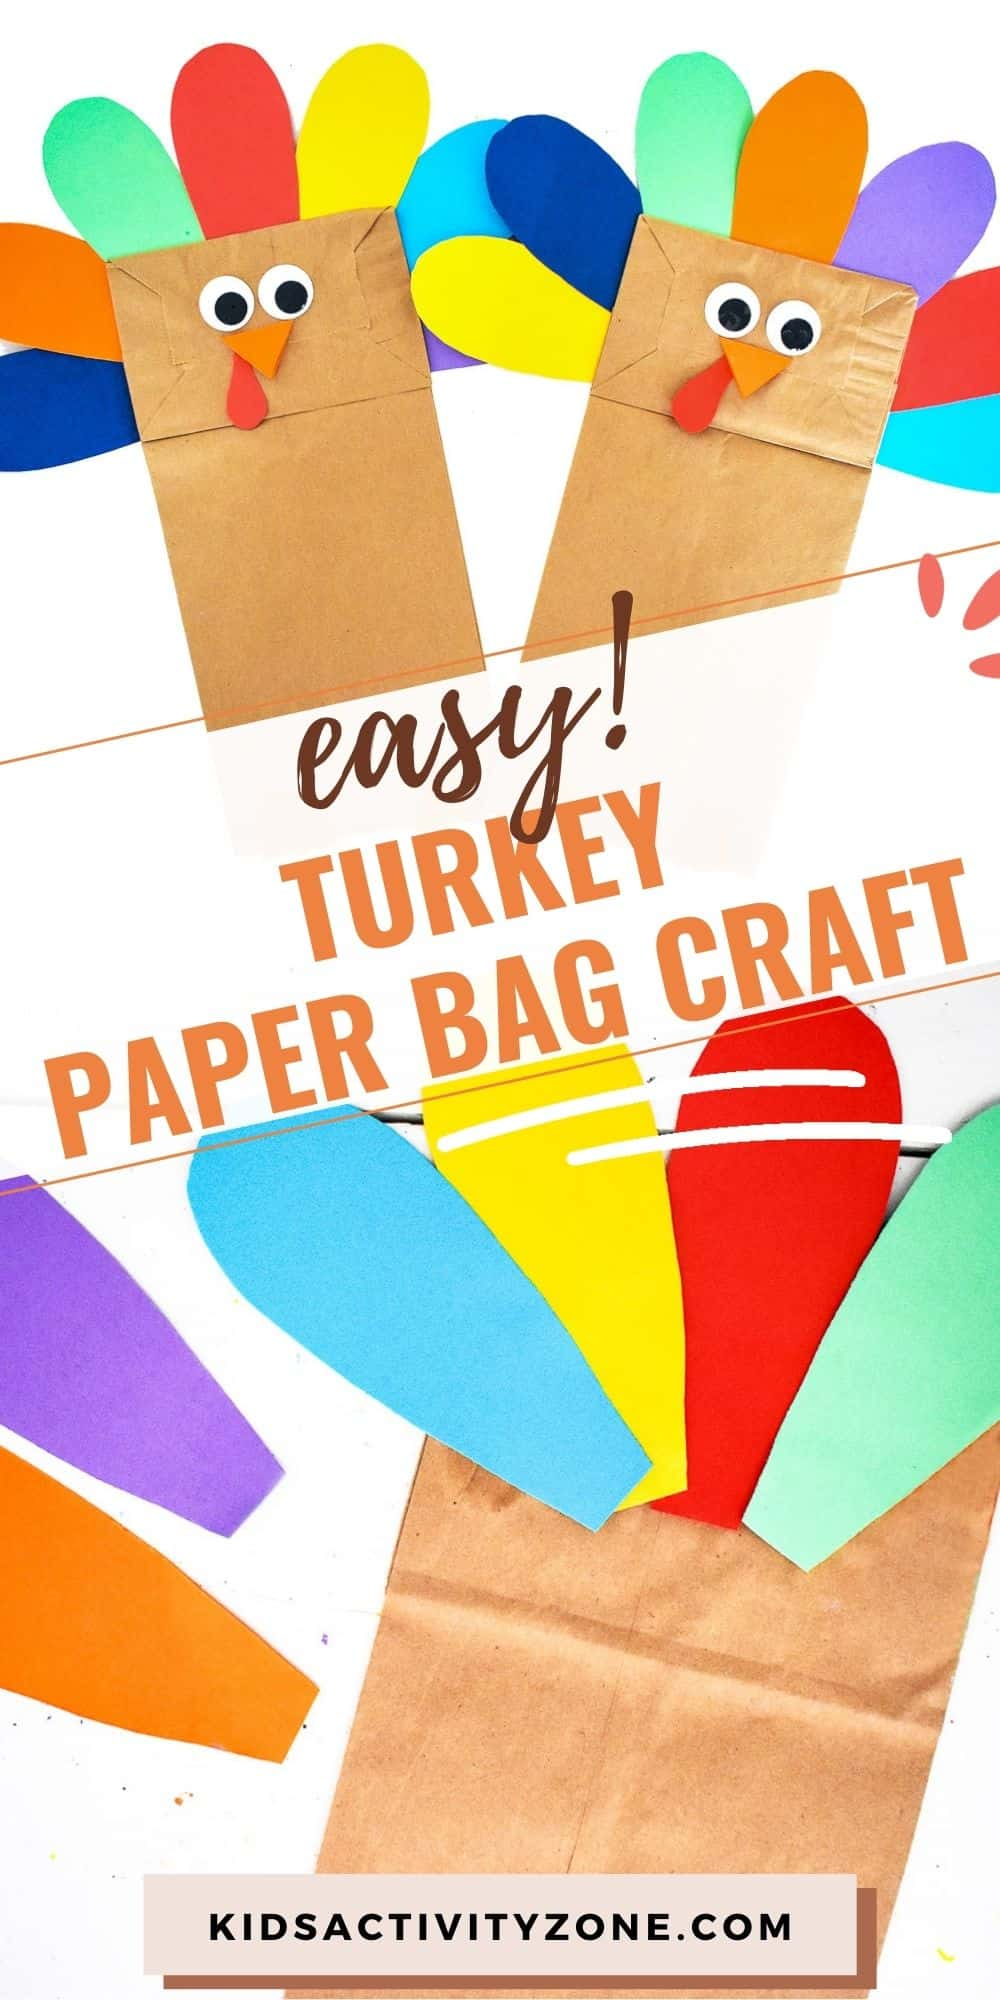 Grab your paper bags and make these adorable Turkey Paper Bag Craft! You only need common materials that are already in your house. With minimal prep and clean up this cute Thanksgiving craft is perfect for doing on the weekend or for classroom parties and activities!